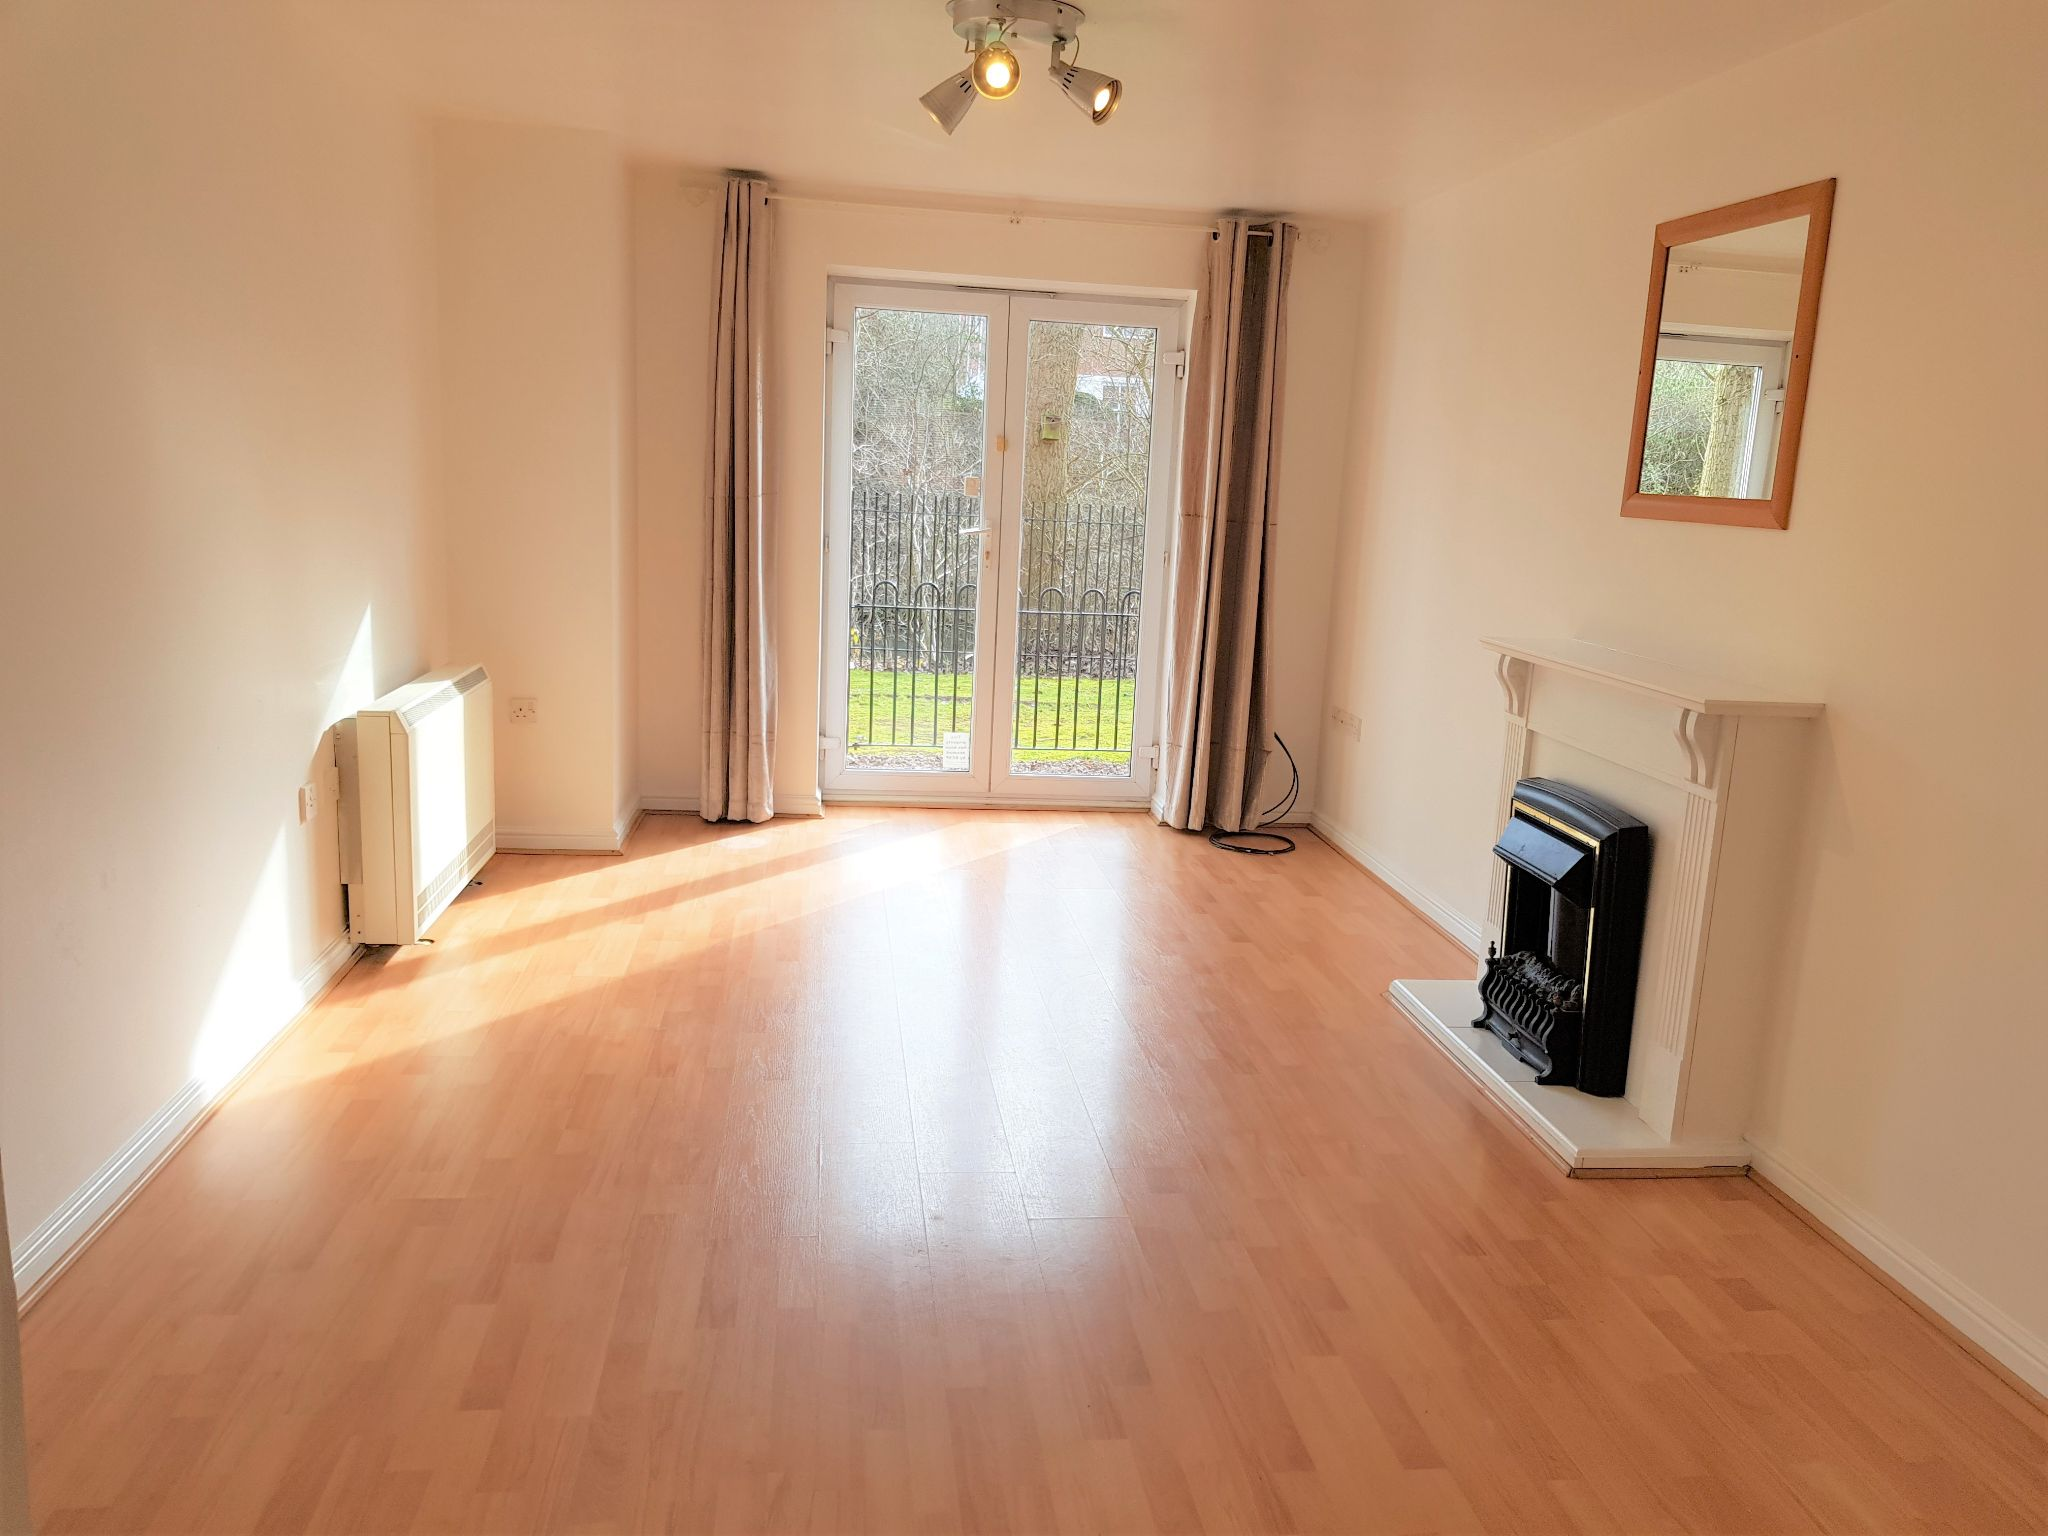 2 Bedroom Ground Floor Flat/apartment For Sale - Lounge